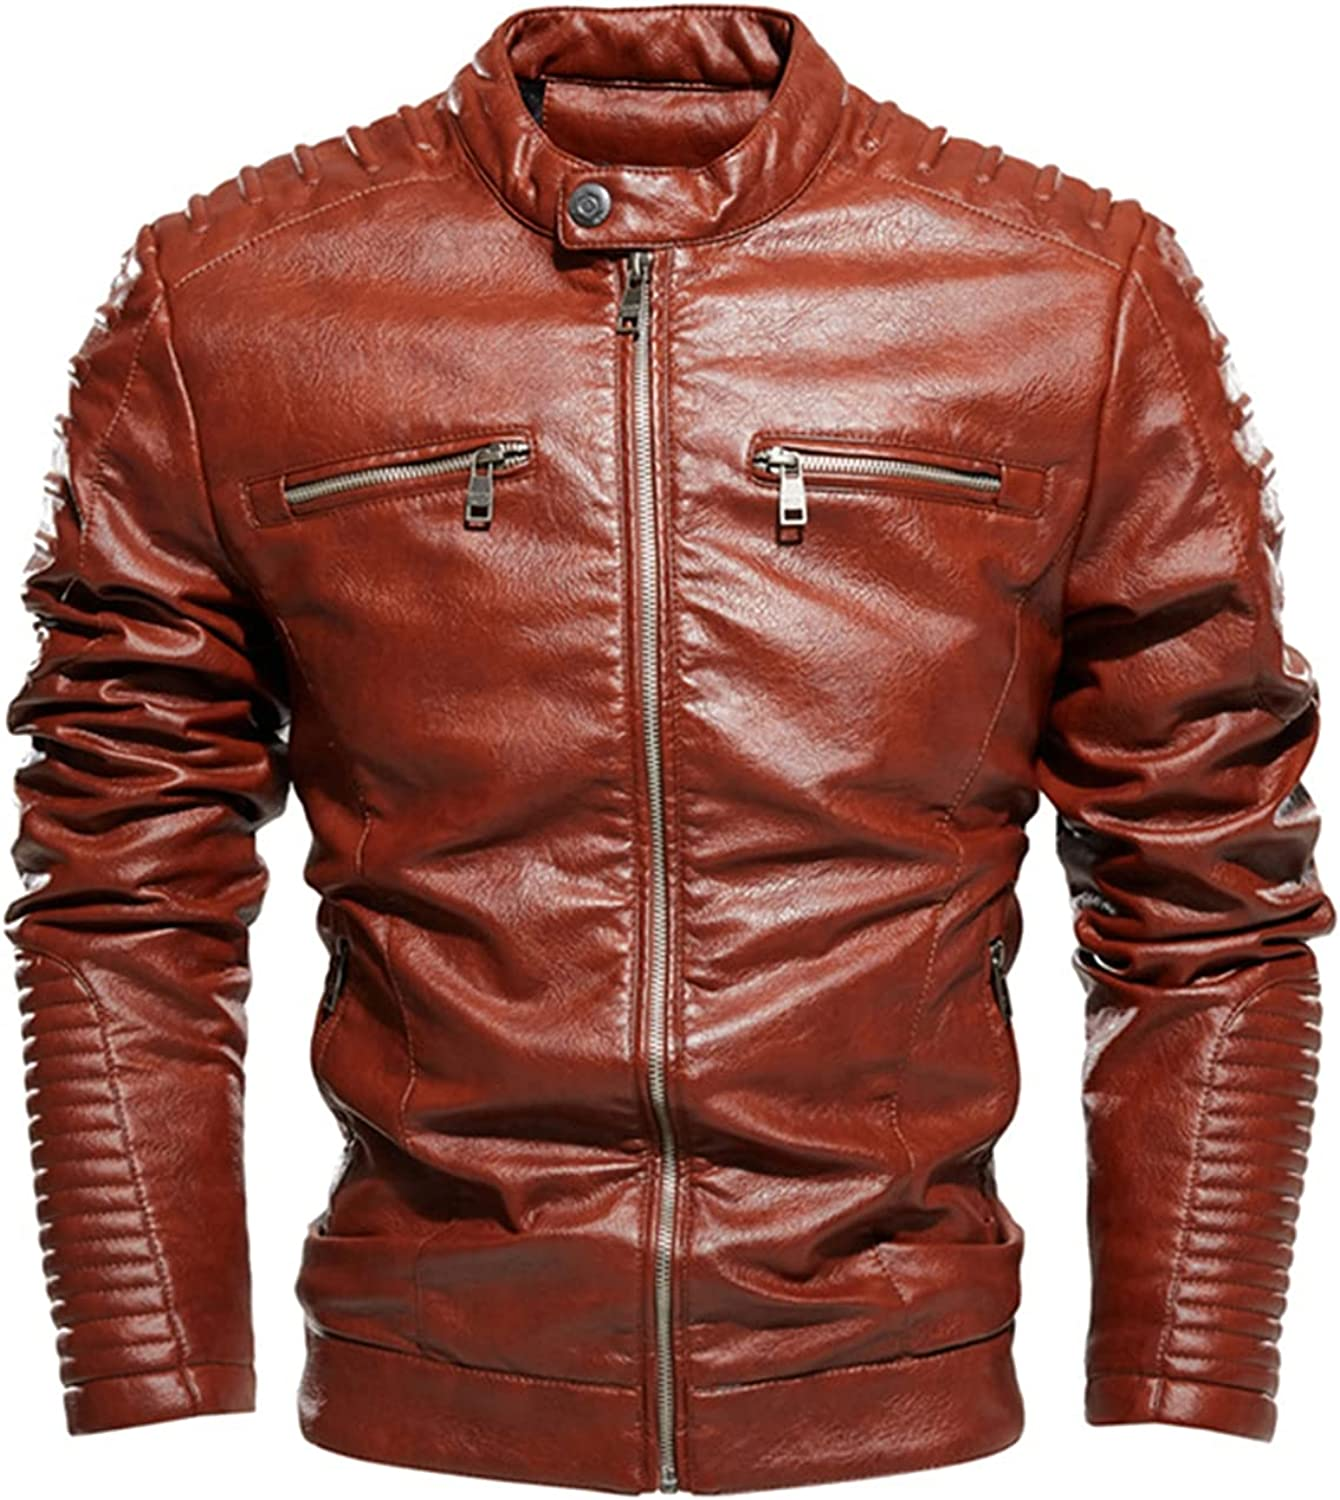 Men's Vintage Stand Collar Leather Jacket,Youth Motorcycle Jackets,Fashion Slim Coat